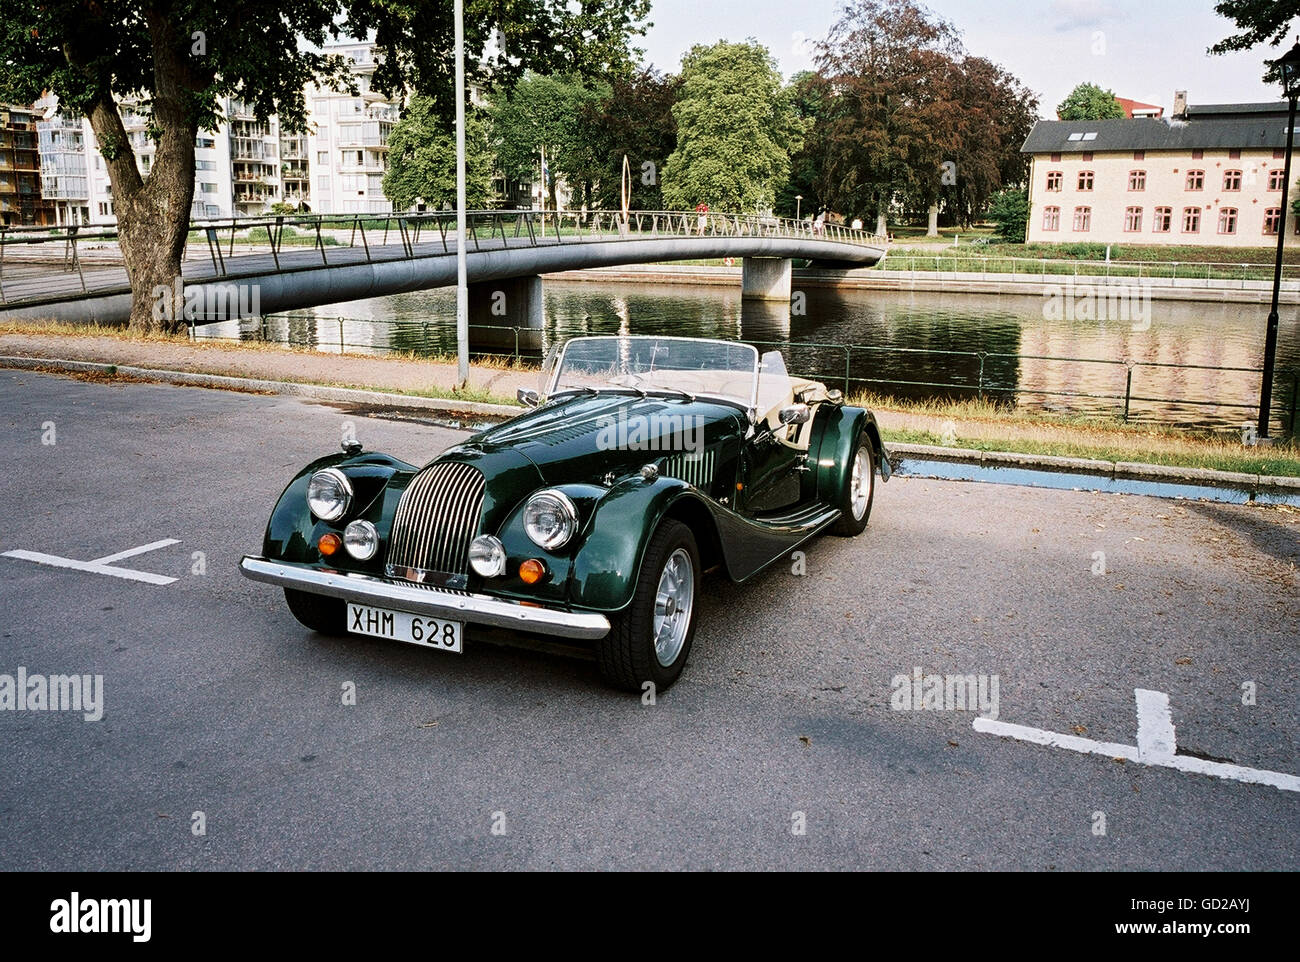 Car Brands Stock Photos & Car Brands Stock Images - Alamy